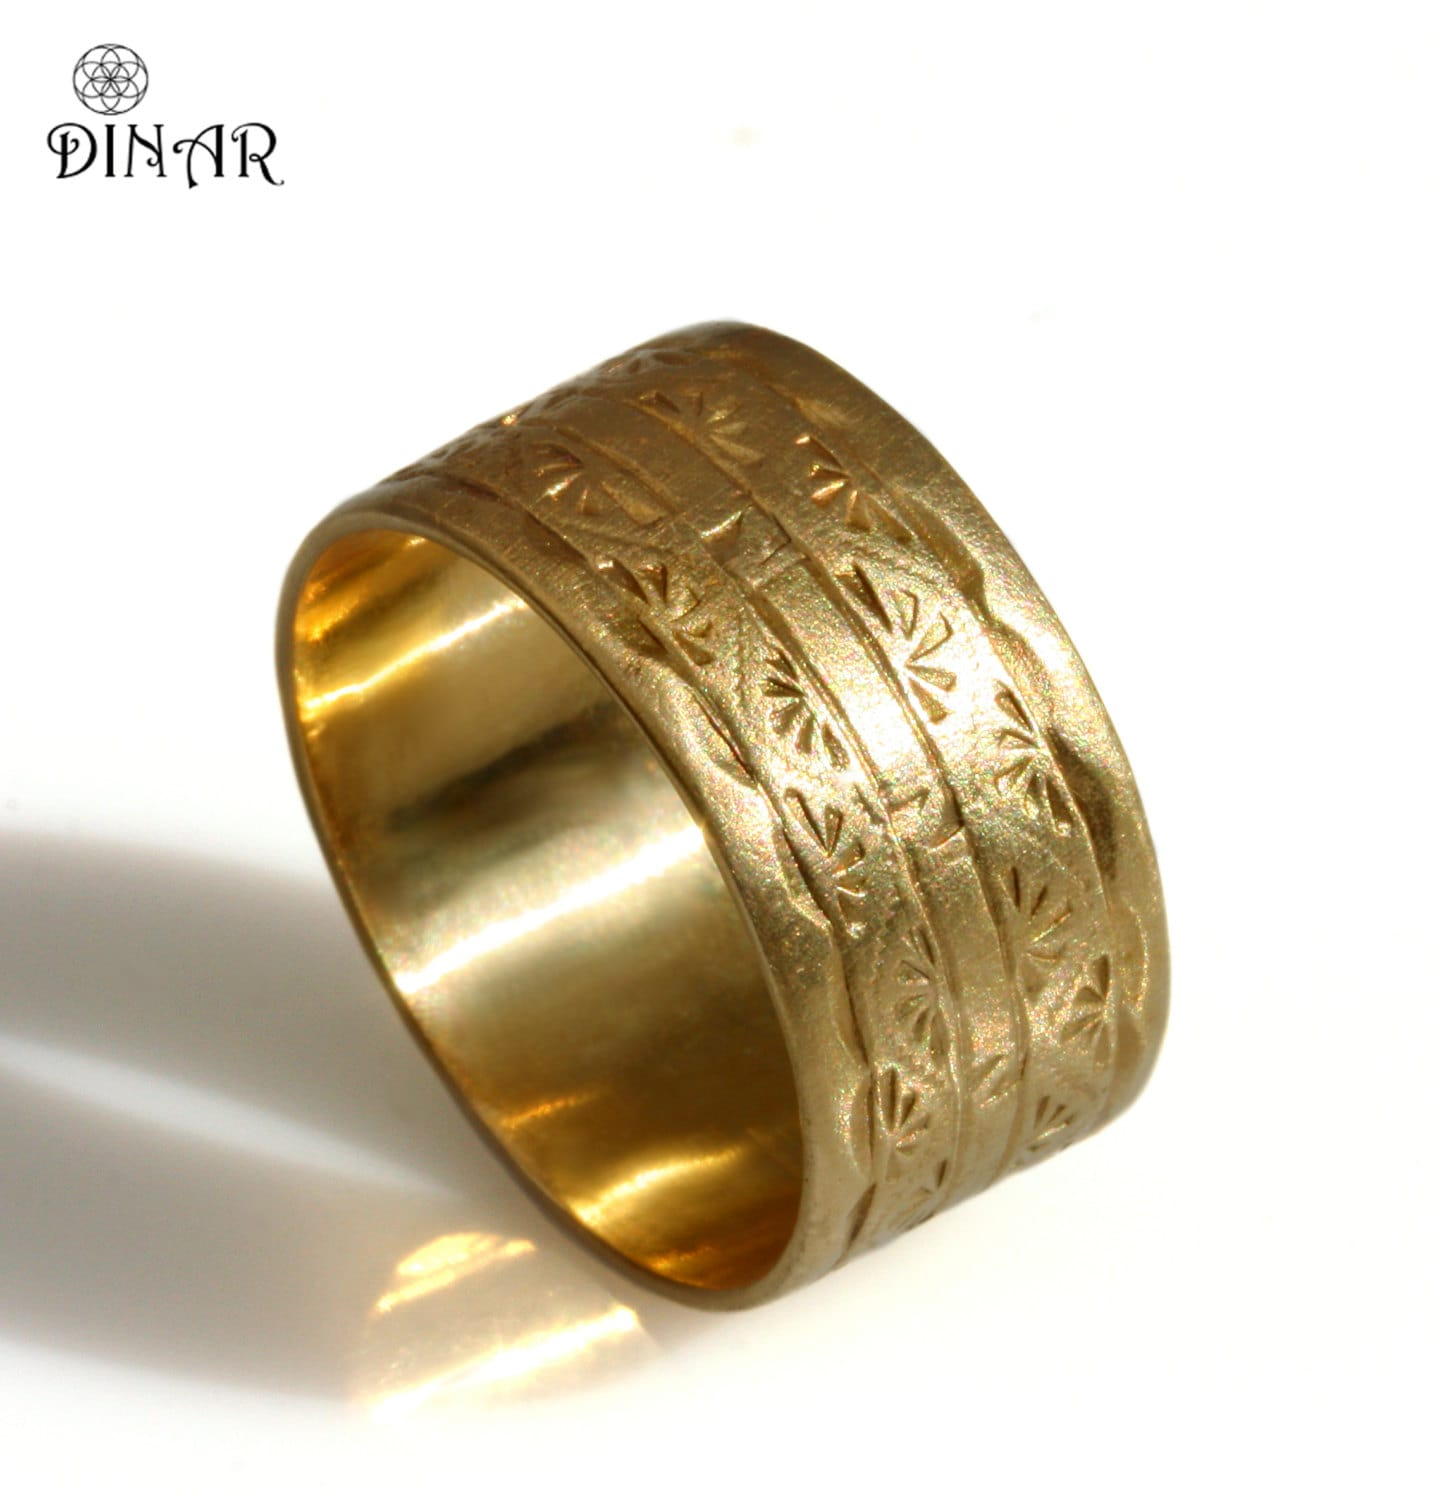 10mm wedding band wide band wedding rings 14k solid yellow gold band 10mm wide Wedding Band Art Deco engravings men s wedding ring wide gold band hand engraved patterned men band